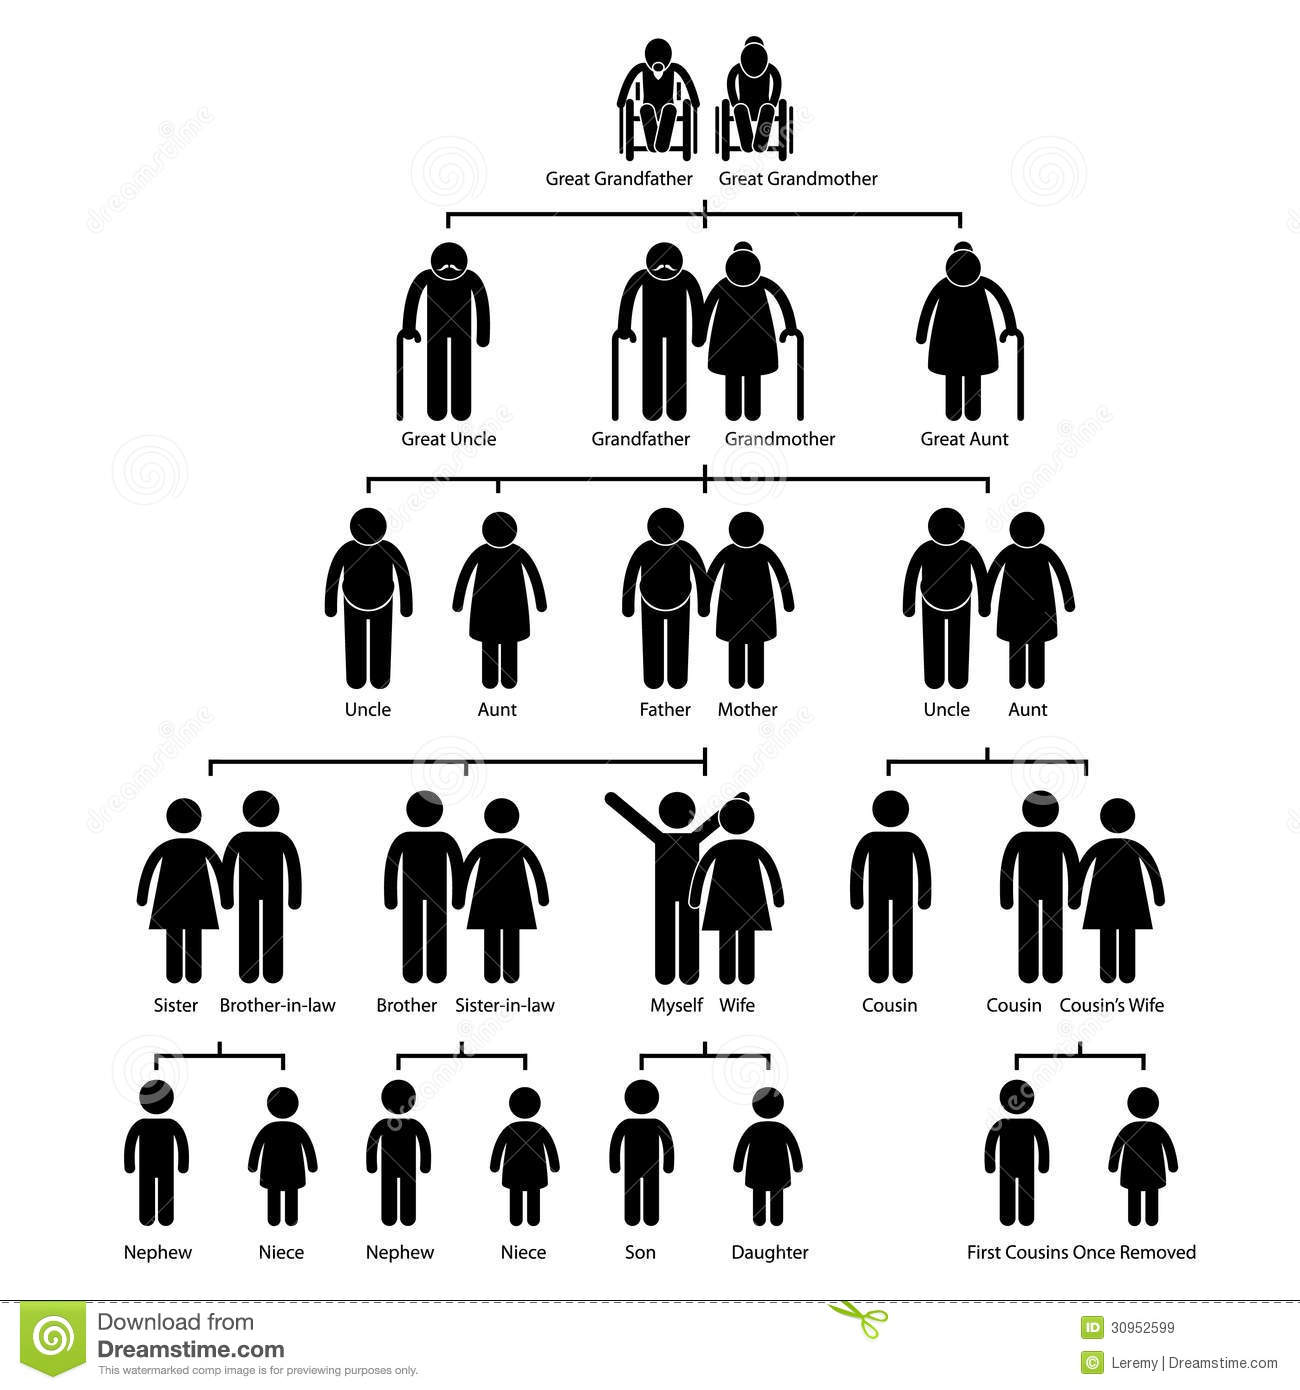 Family Tree Genealogy Diagram Pictogram Stock Vector